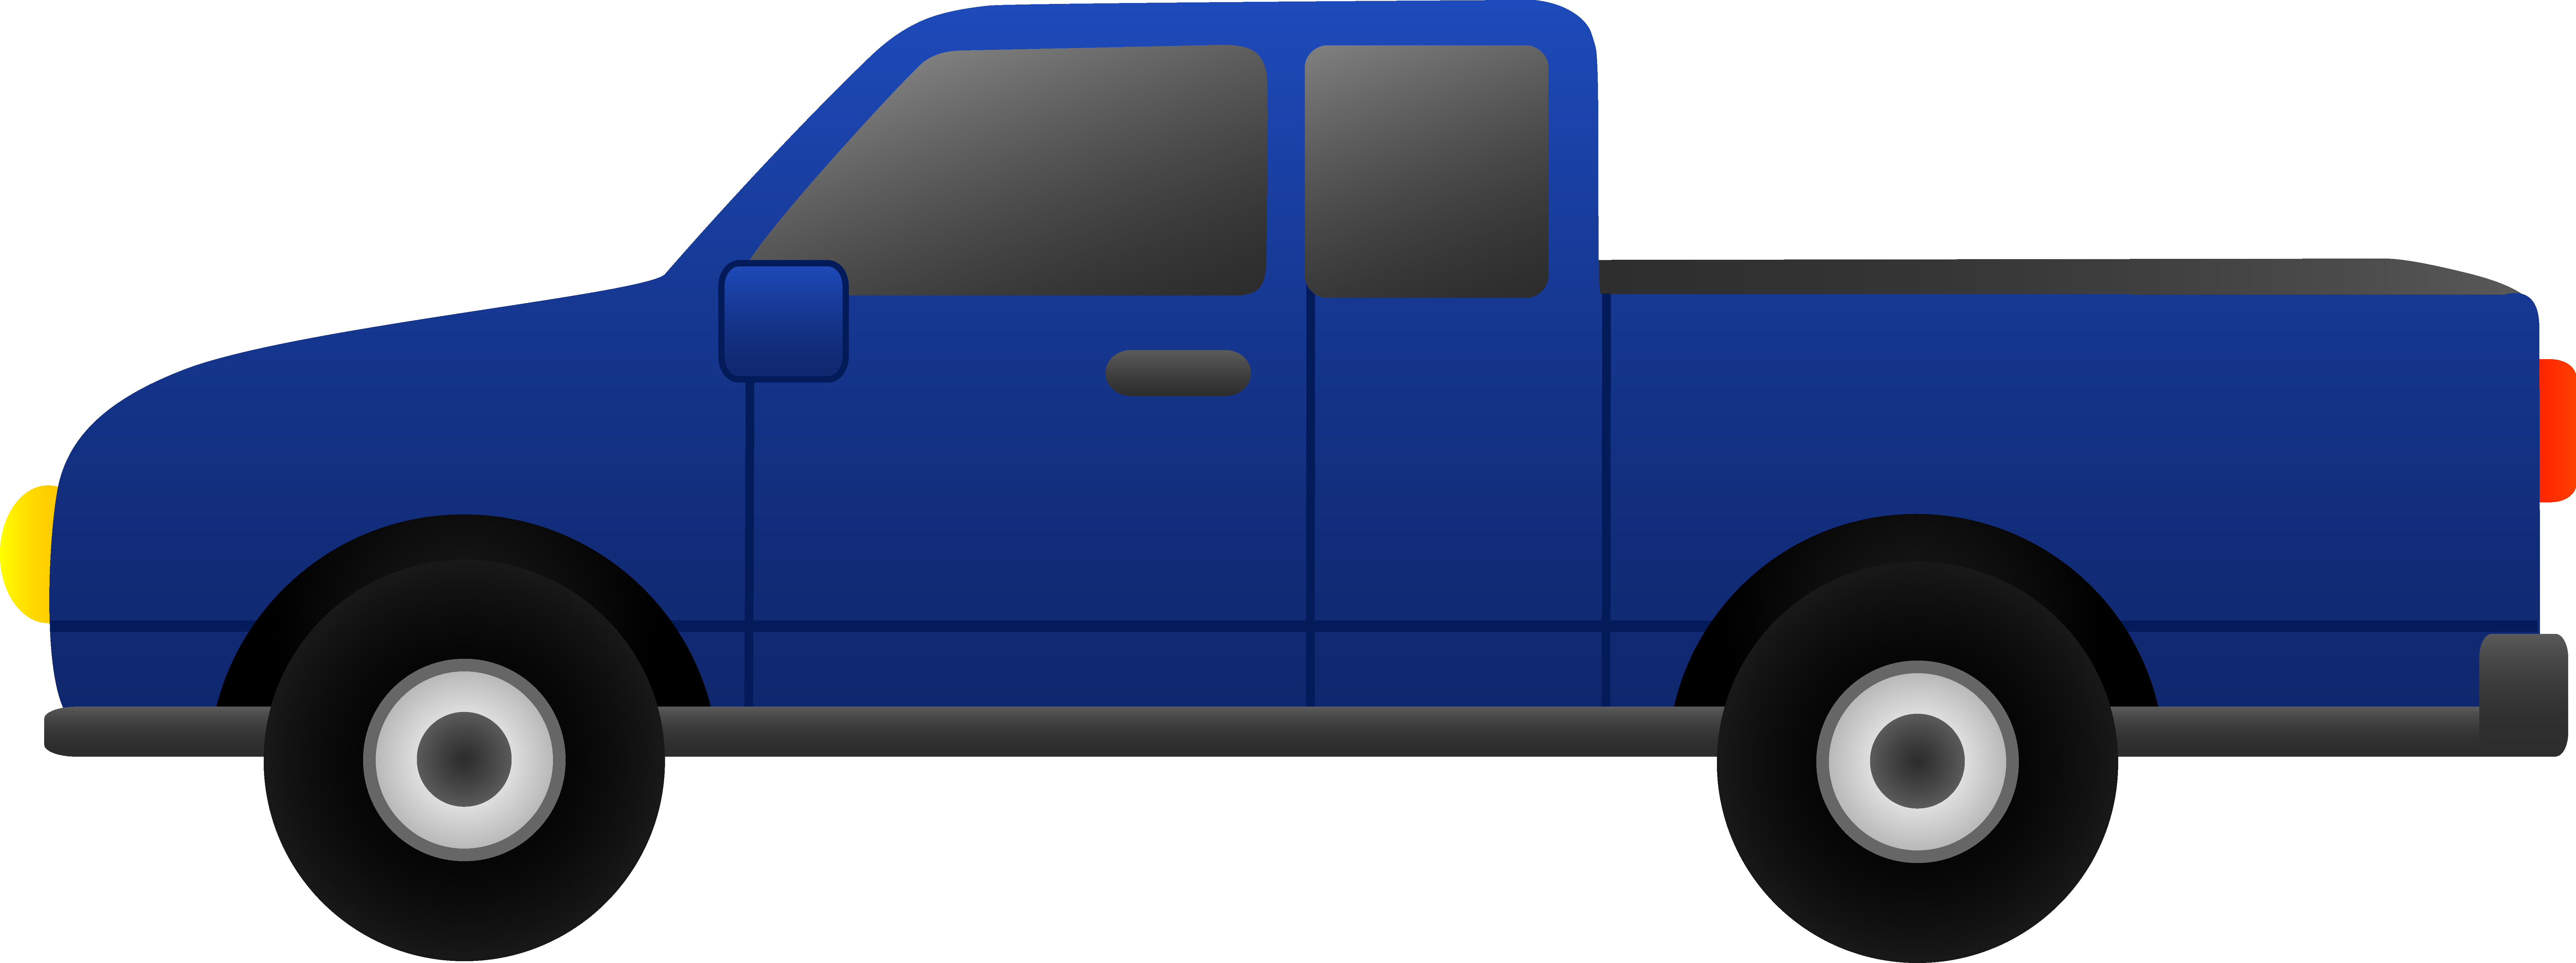 Pick up truck clipart graphic royalty free Top Pickup Truck Clipart Pricing graphic royalty free